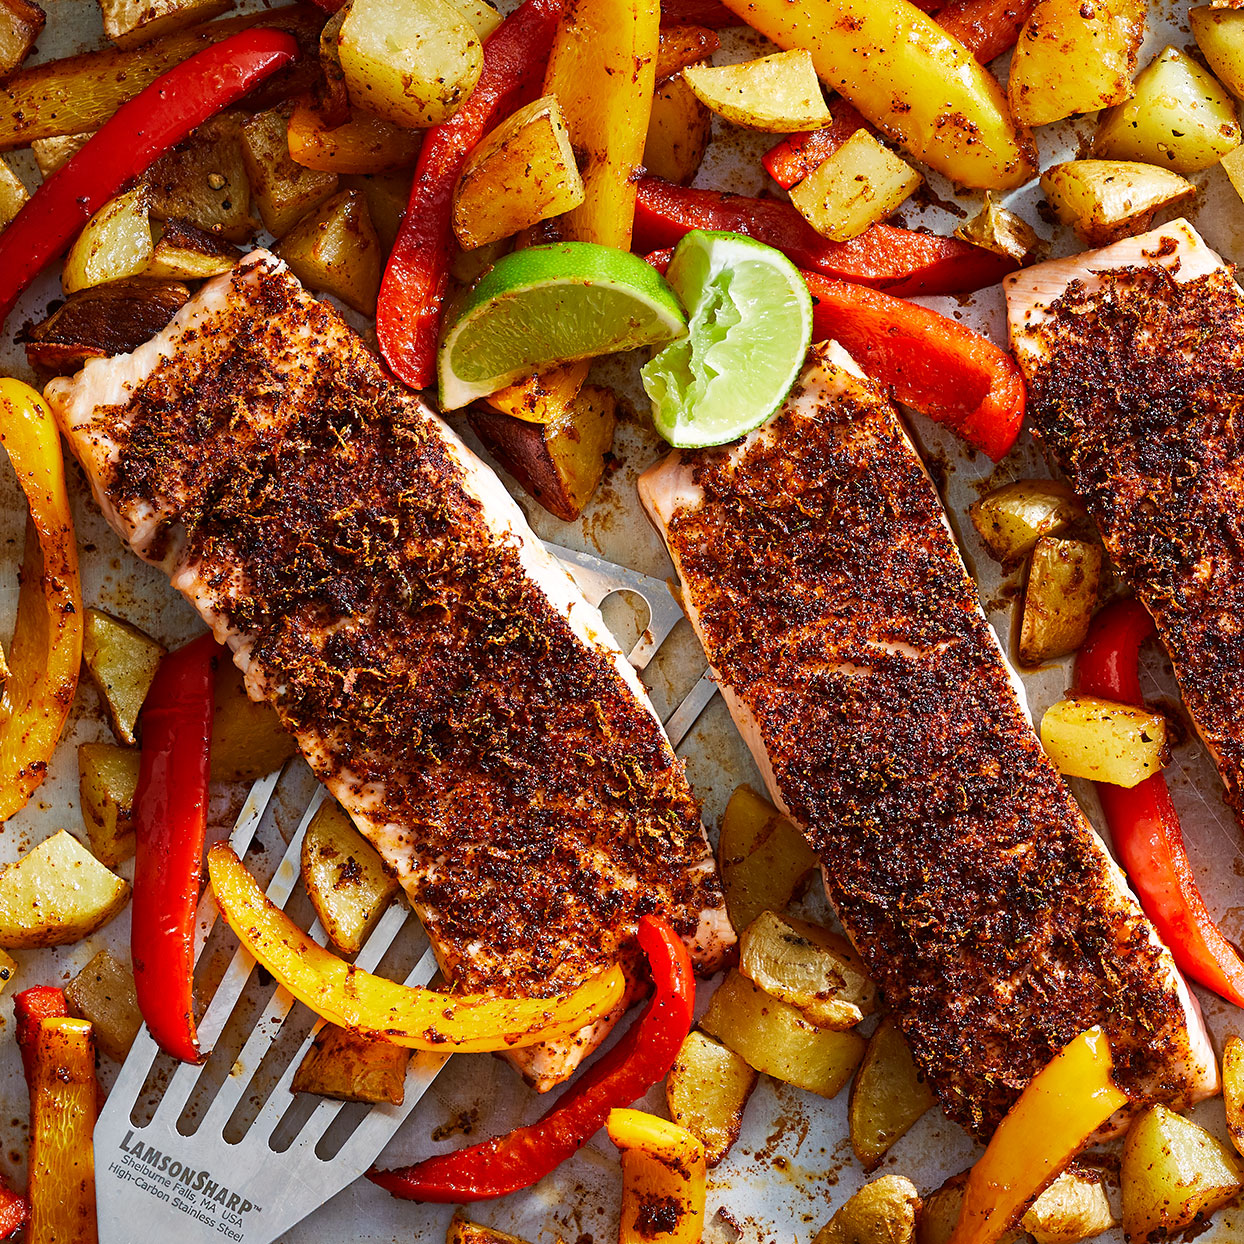 Sheet-Pan Chili-Lime Salmon with Potatoes & Peppers Trusted Brands